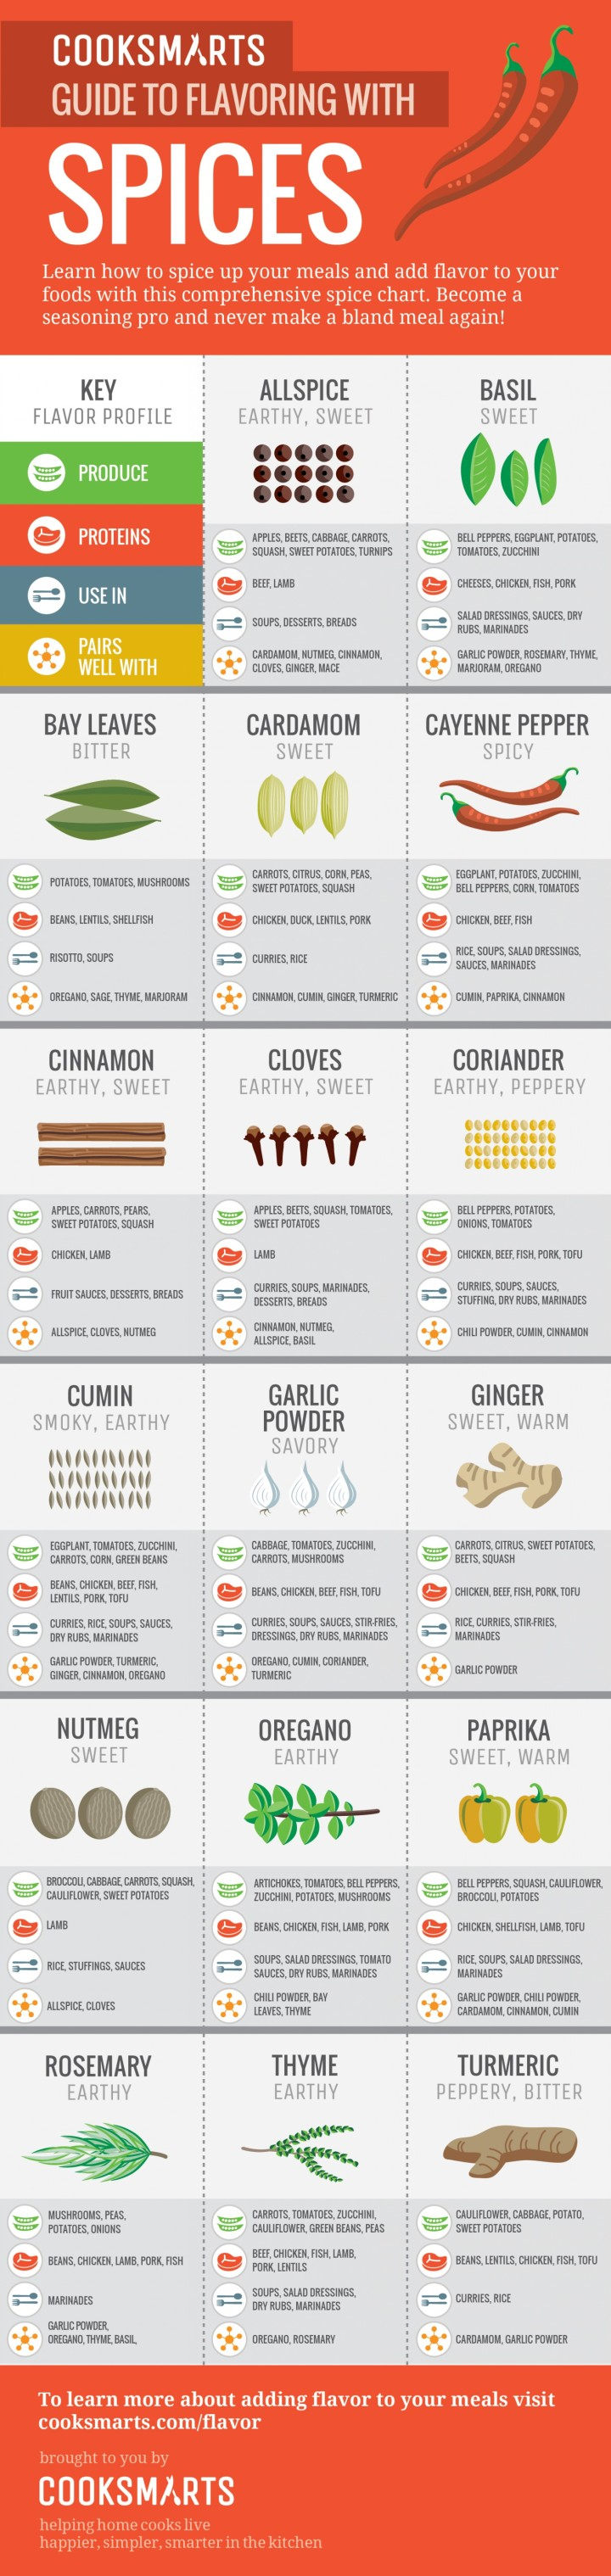 guide-to-flavoring-with-spices-vertical_54340cd247473_w1500